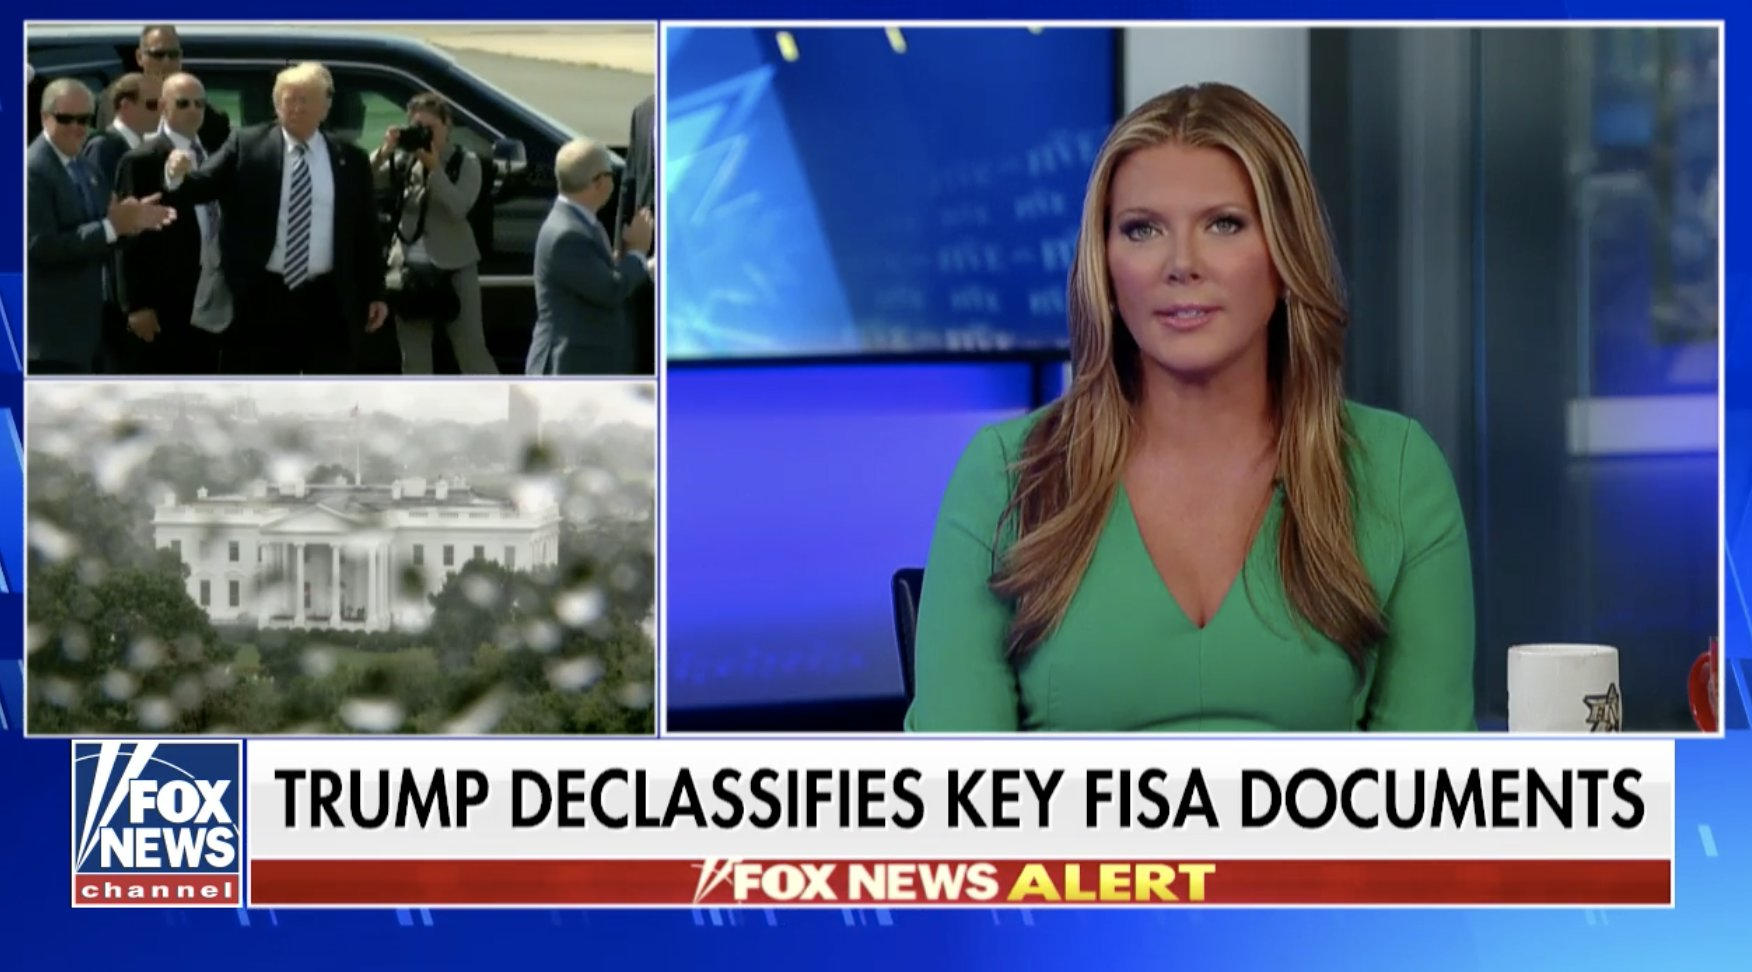 Trump orders feds to declassify key FISA documents, text messages in FBI Russia probe